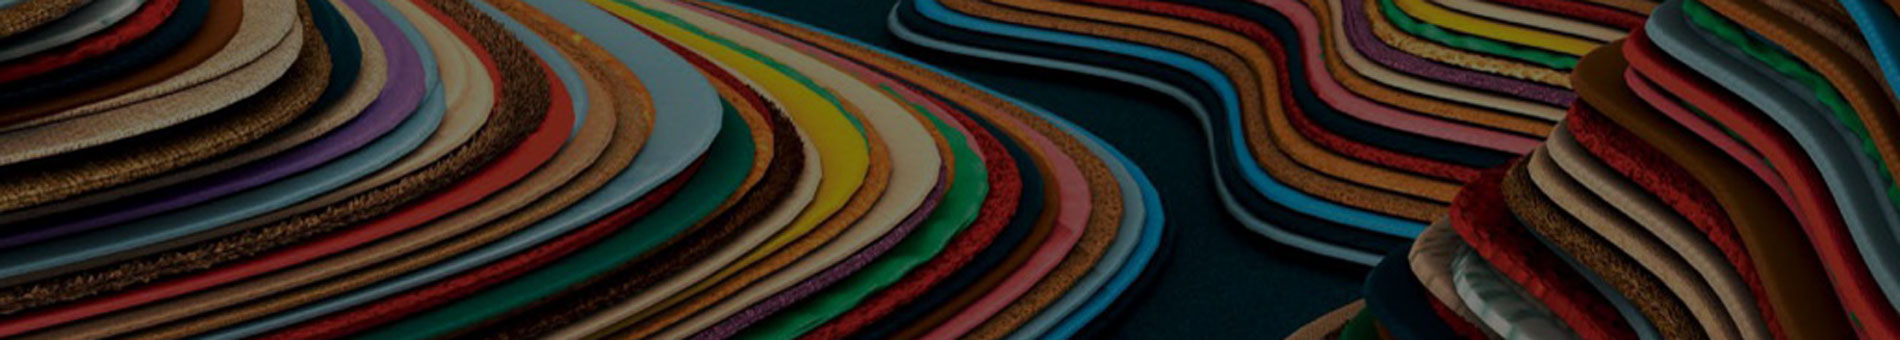 Domotex 2016 Shapes World Trends In Floor Coverings